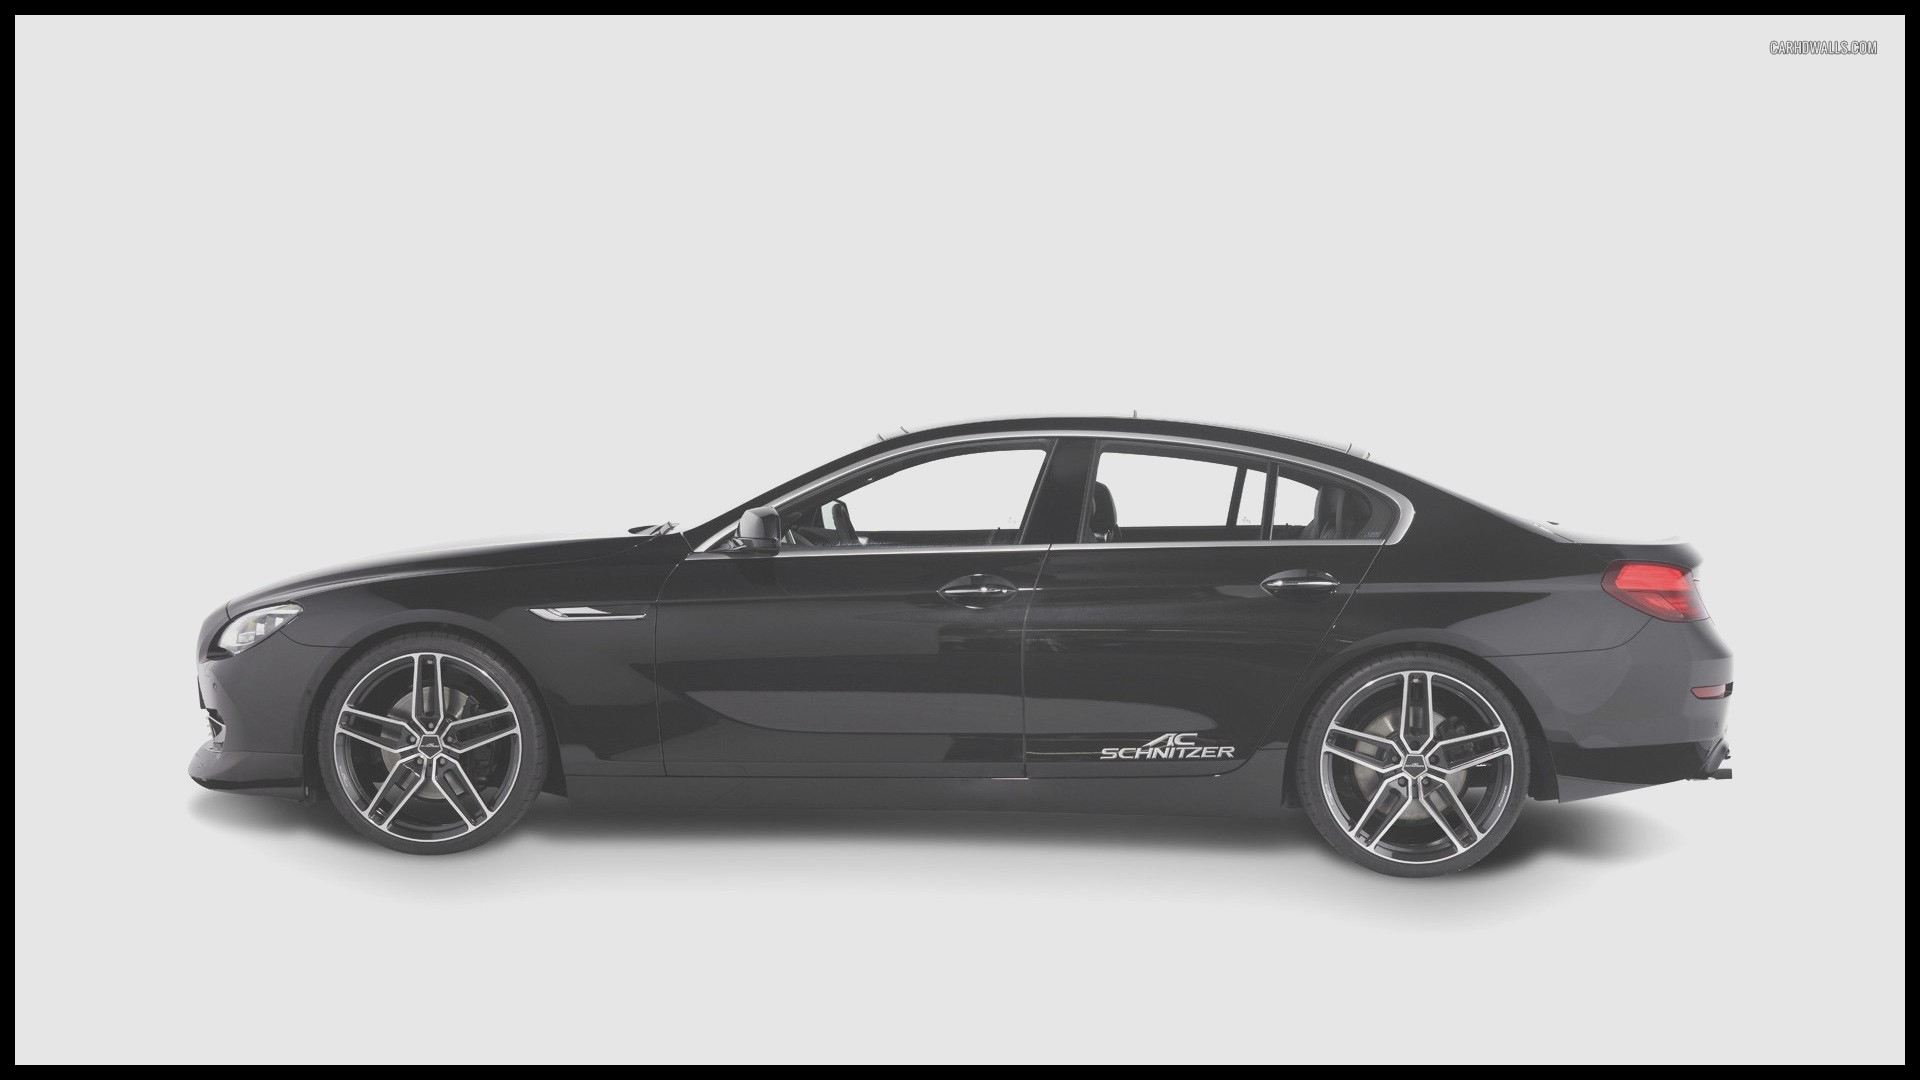 Cool Review About Bmw 328i Coupe With Exciting For Desktop Bmw Coupe Wallpaper